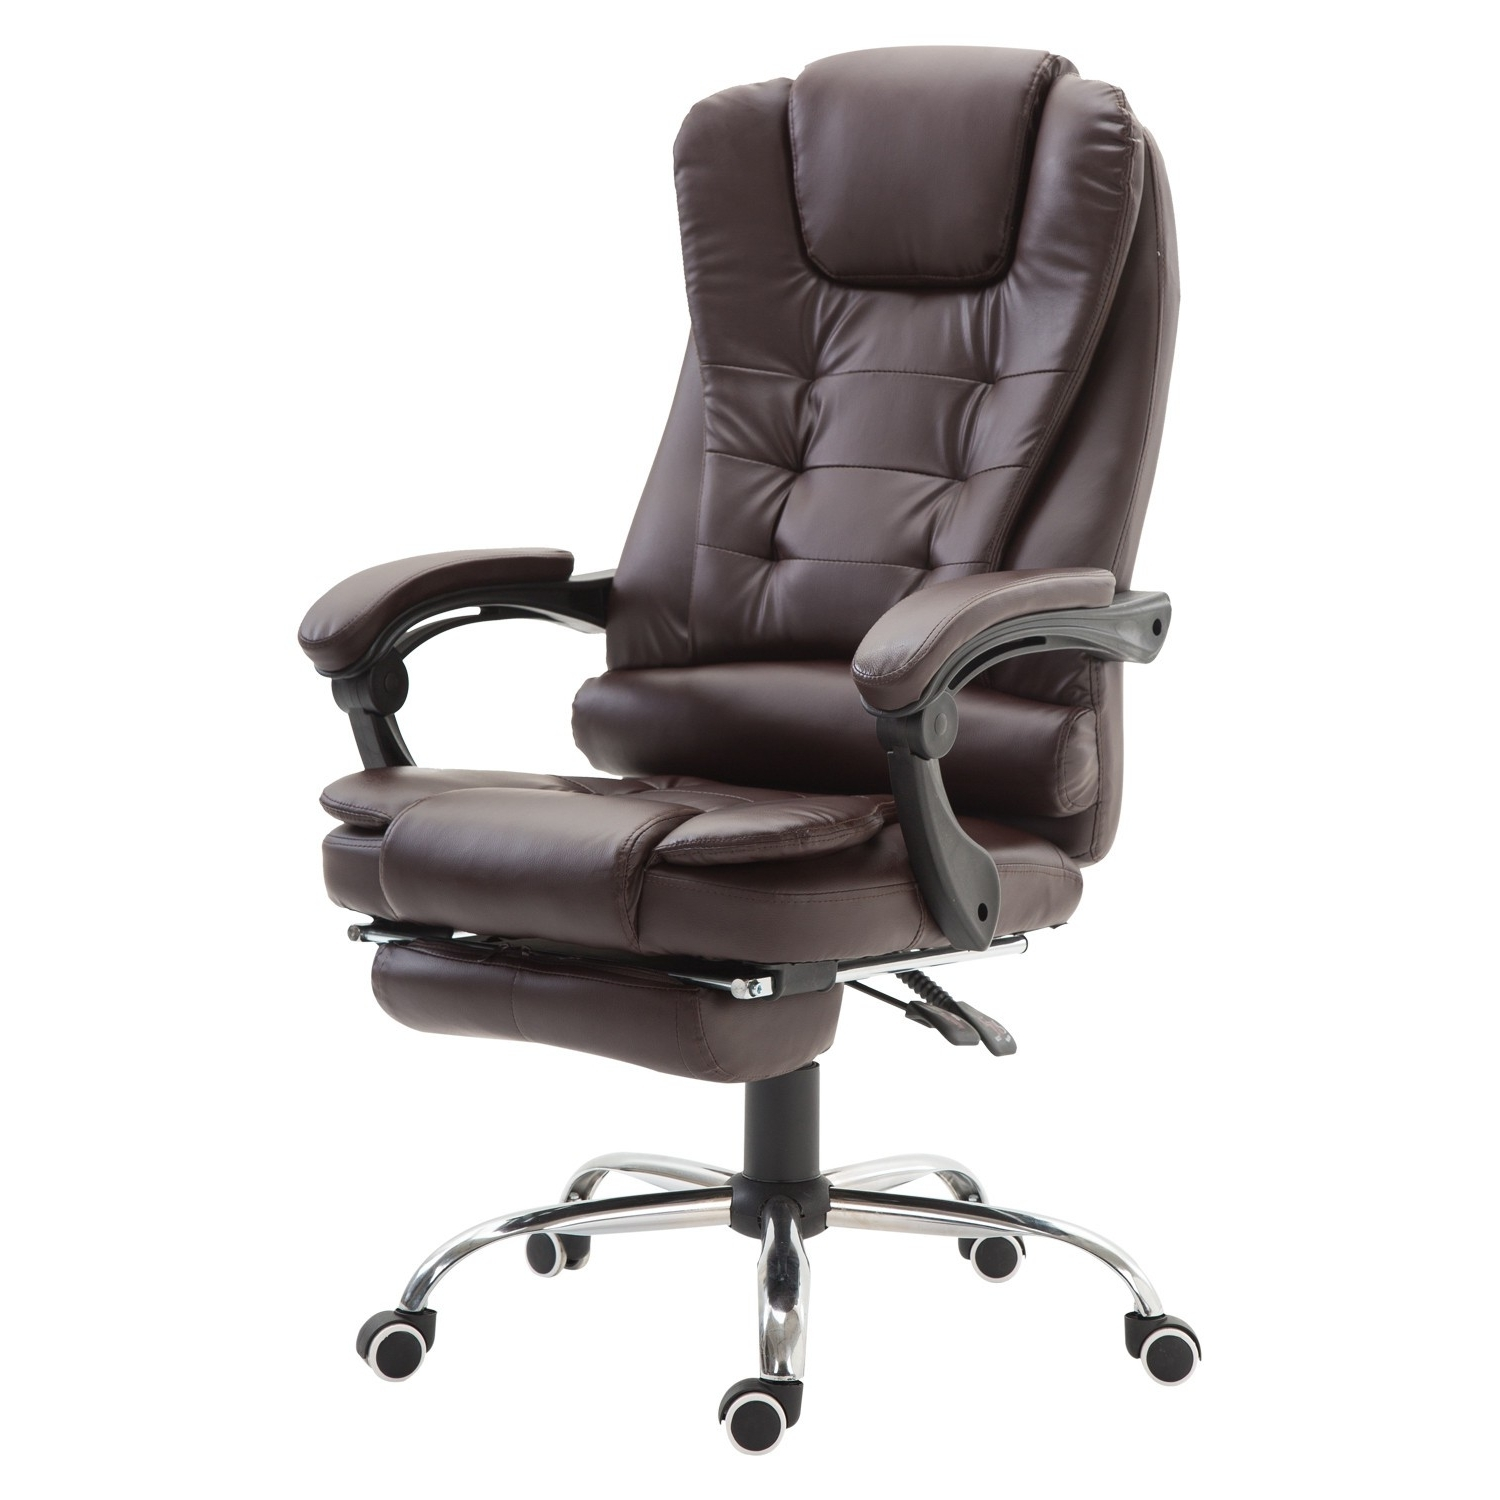 Heavy Duty Executive Office Chairs Inside Well Known Homcom Executive Style Reclining Office Napping Chair Pu Leather W (View 8 of 20)